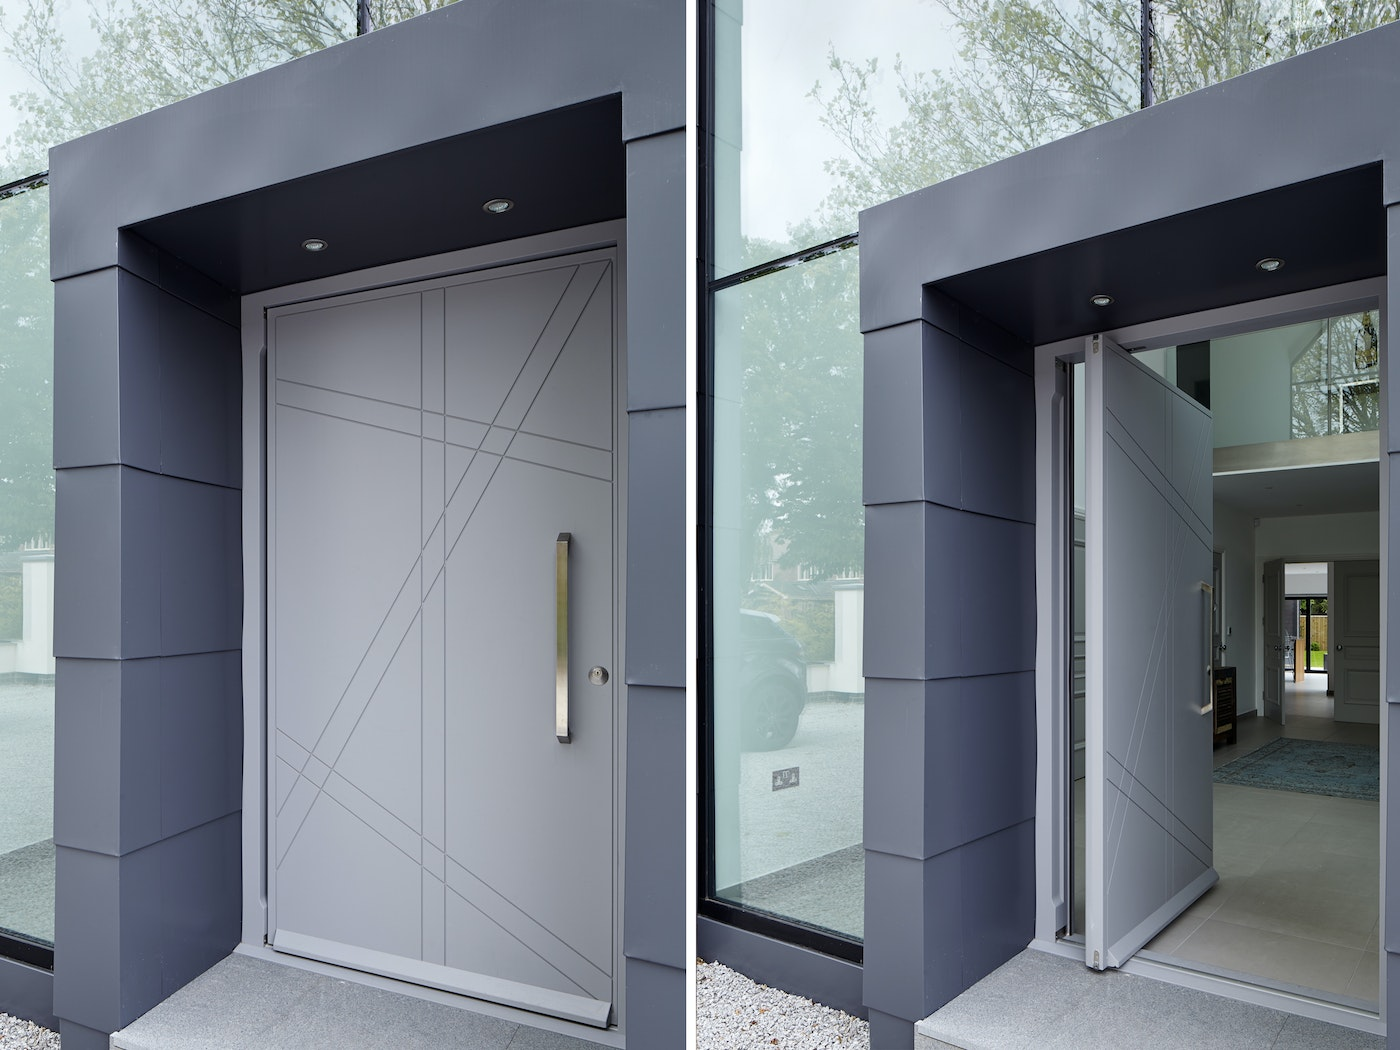 This light grey front door is nicely accented by darker framing & glass walling